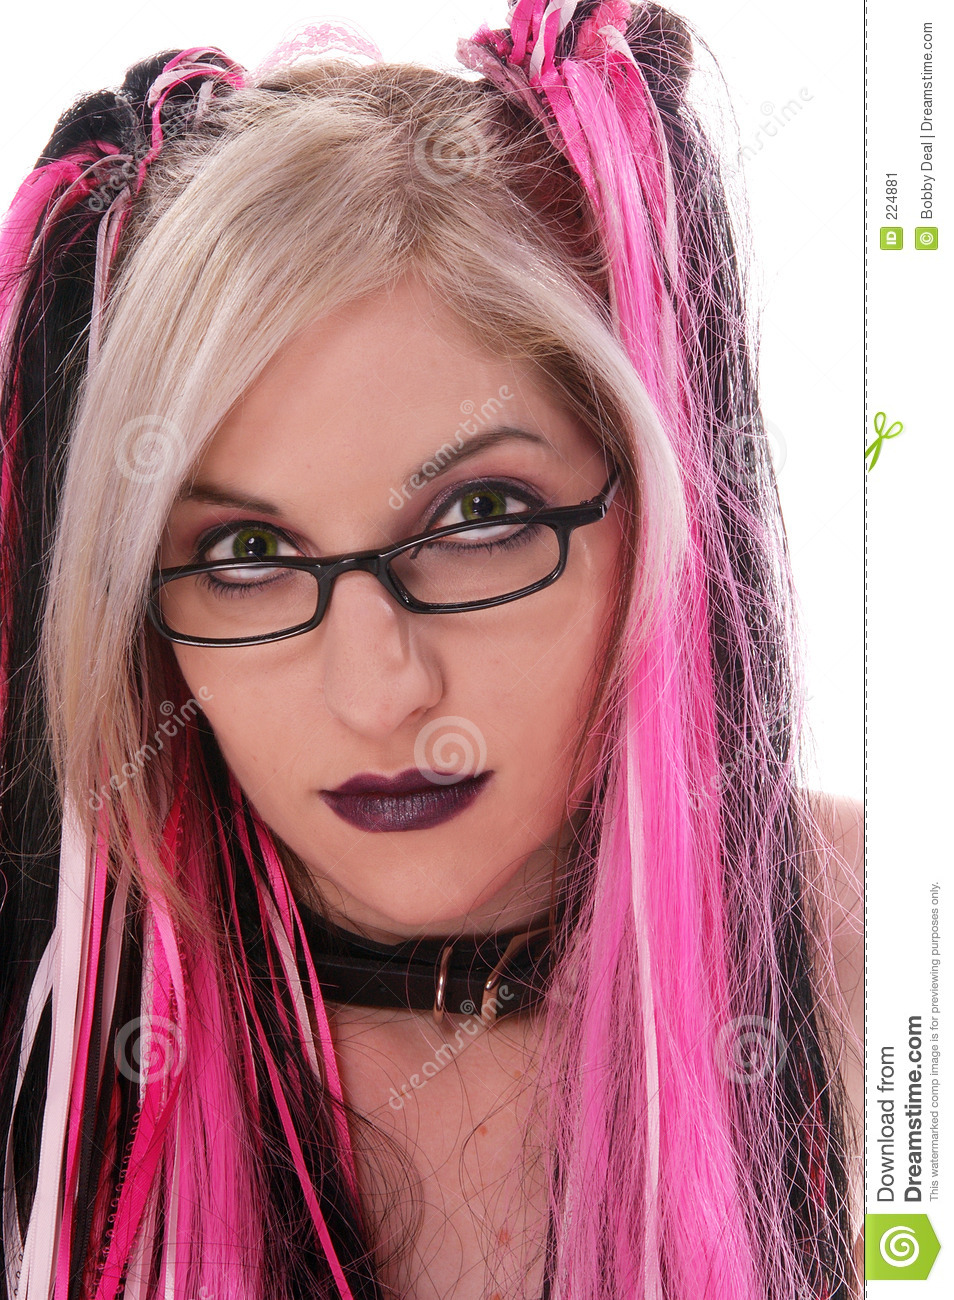 Goth Nerd Stock Image Image Of People, Female, Naked -7808